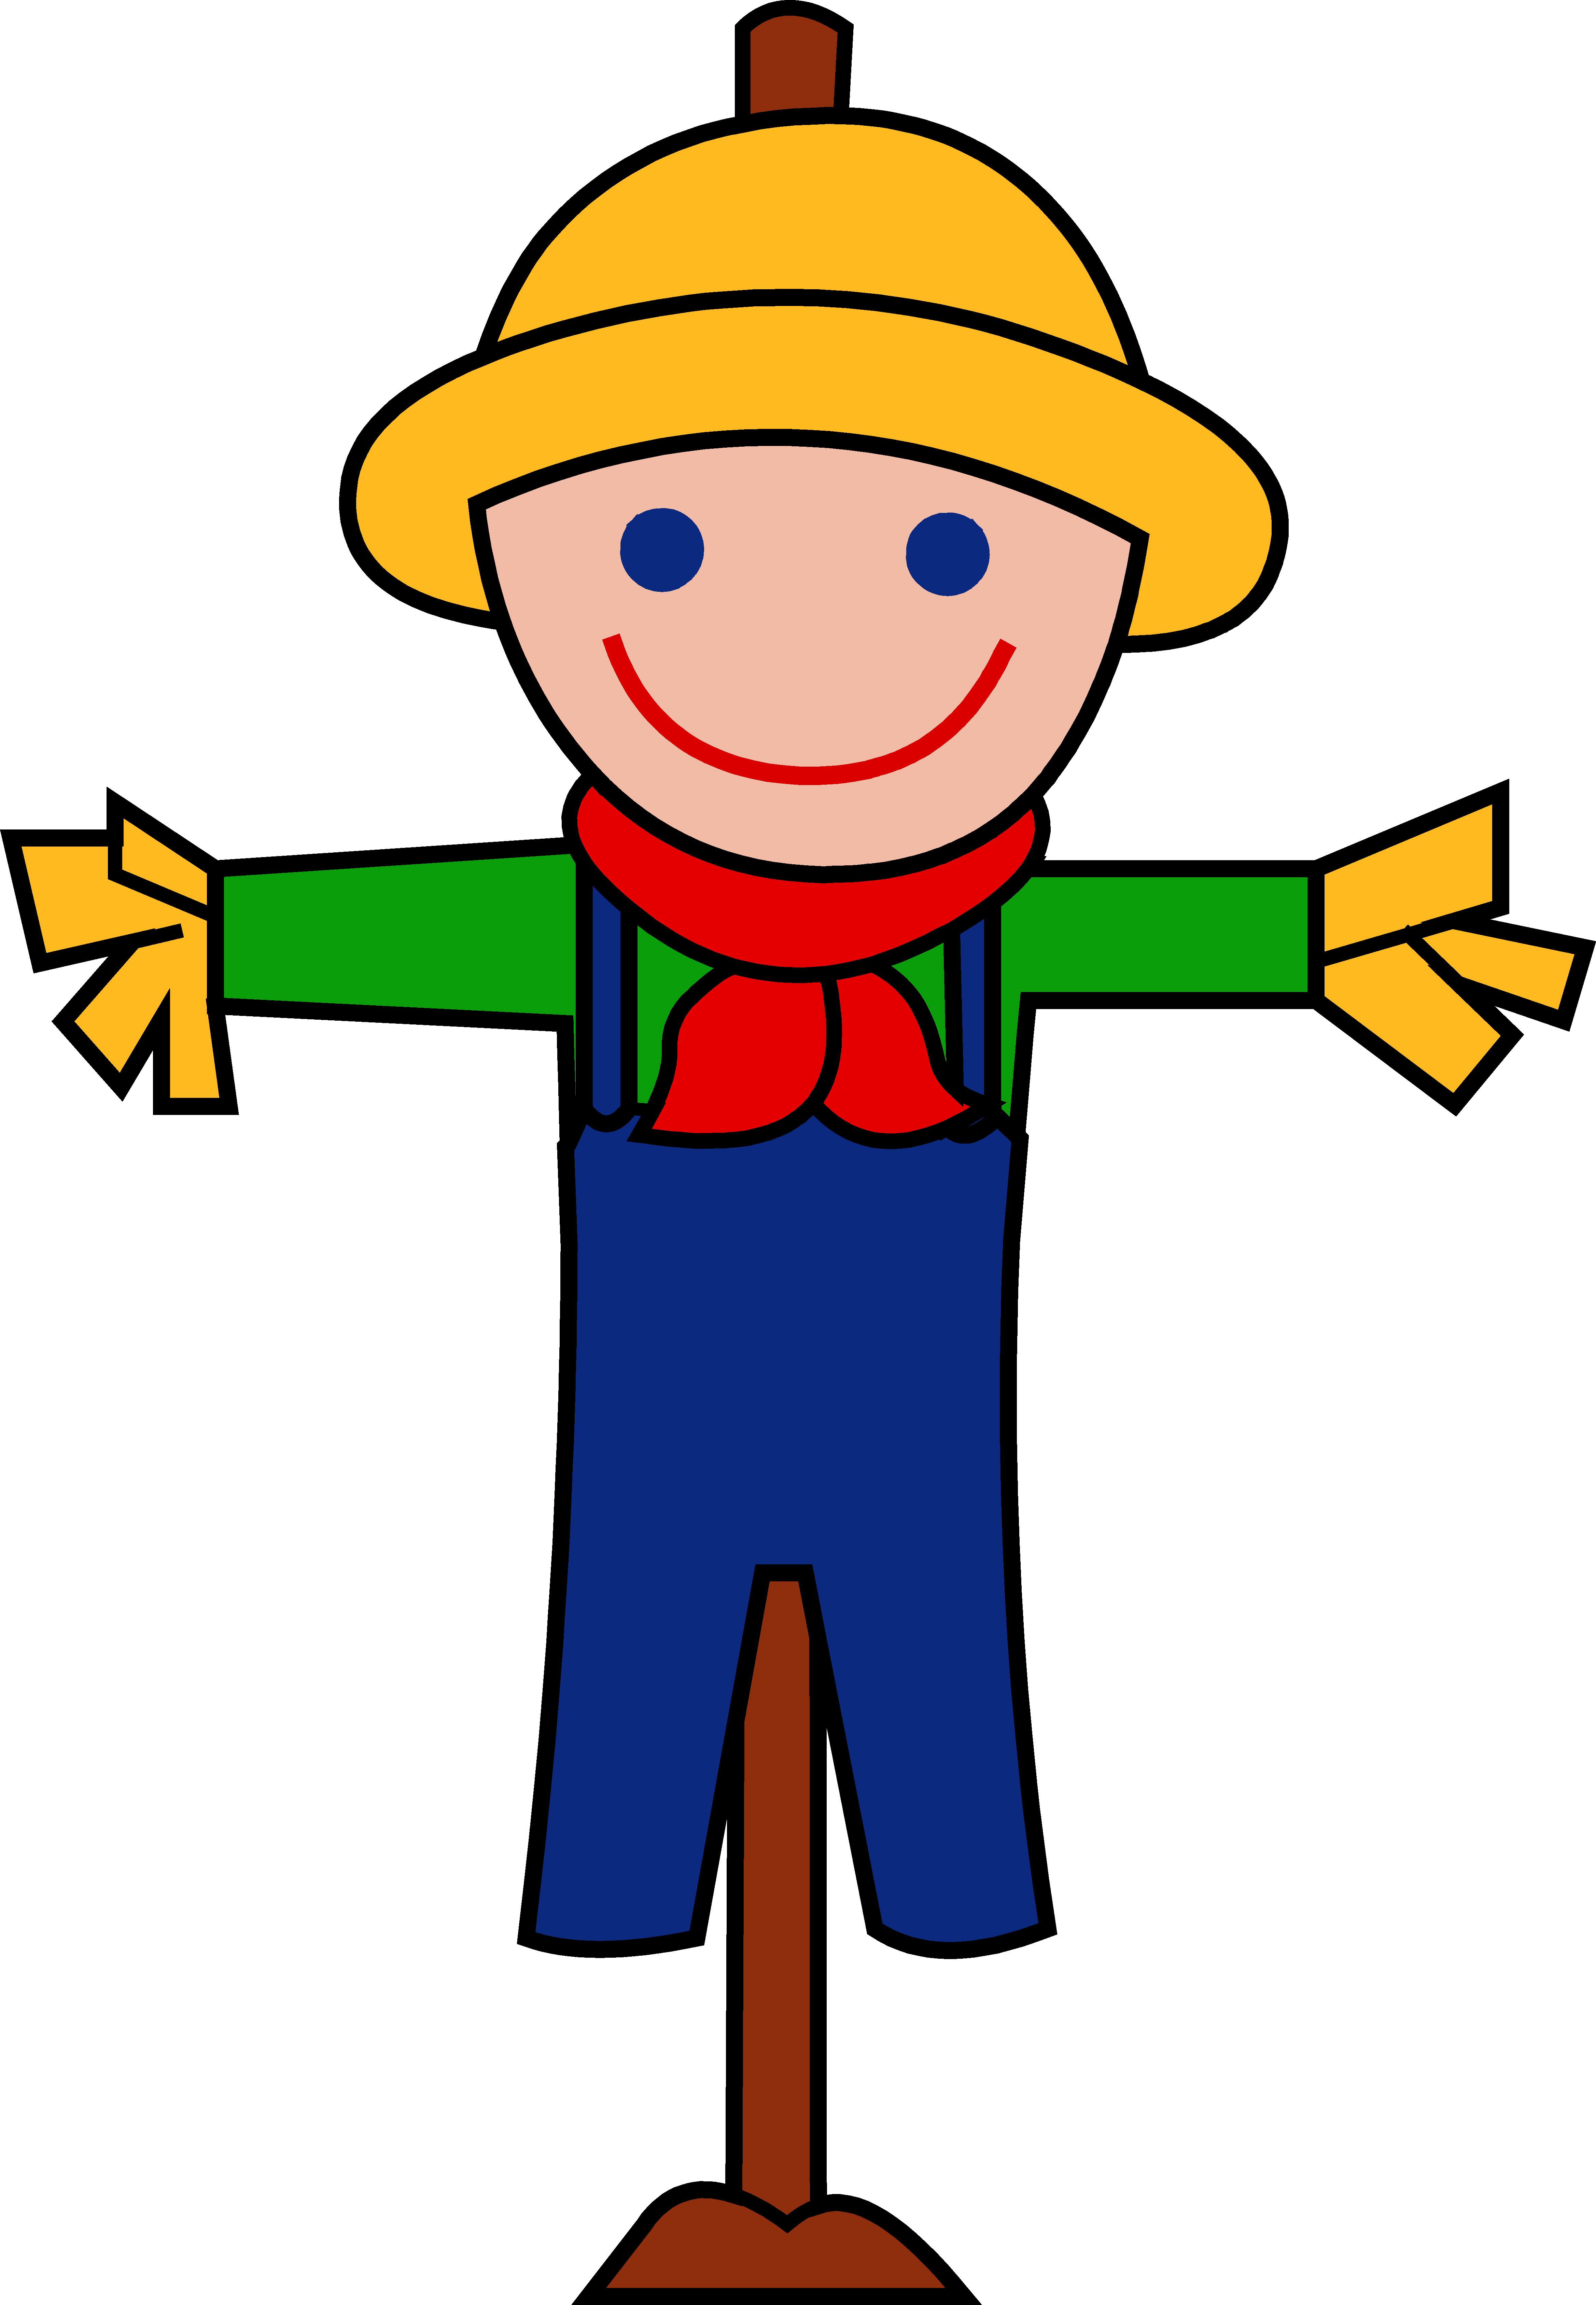 Pumpkin fall clipart person jpg free download Fall Clipart For Kids at GetDrawings.com | Free for personal use ... jpg free download